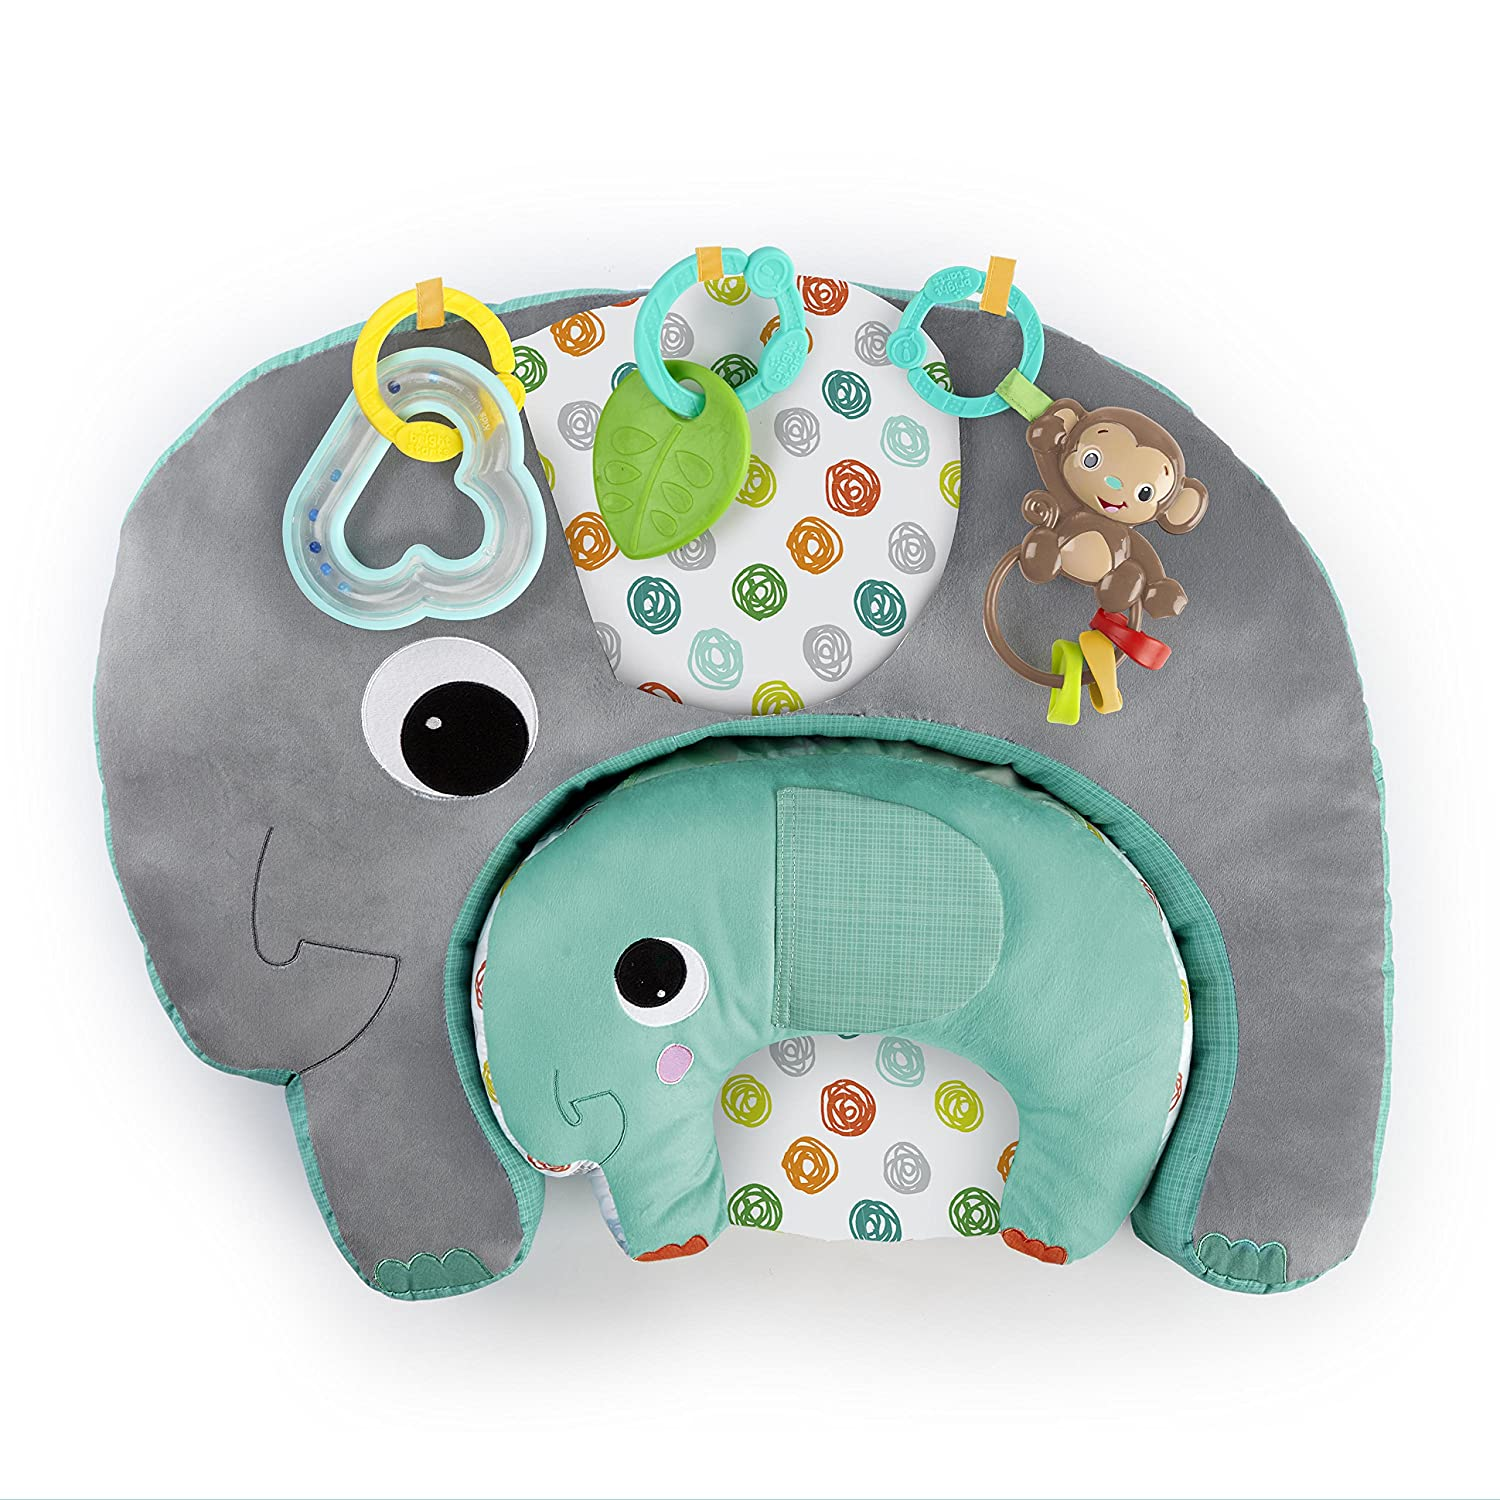 Bright Starts Two Can Play Multi-Use Cushion Set